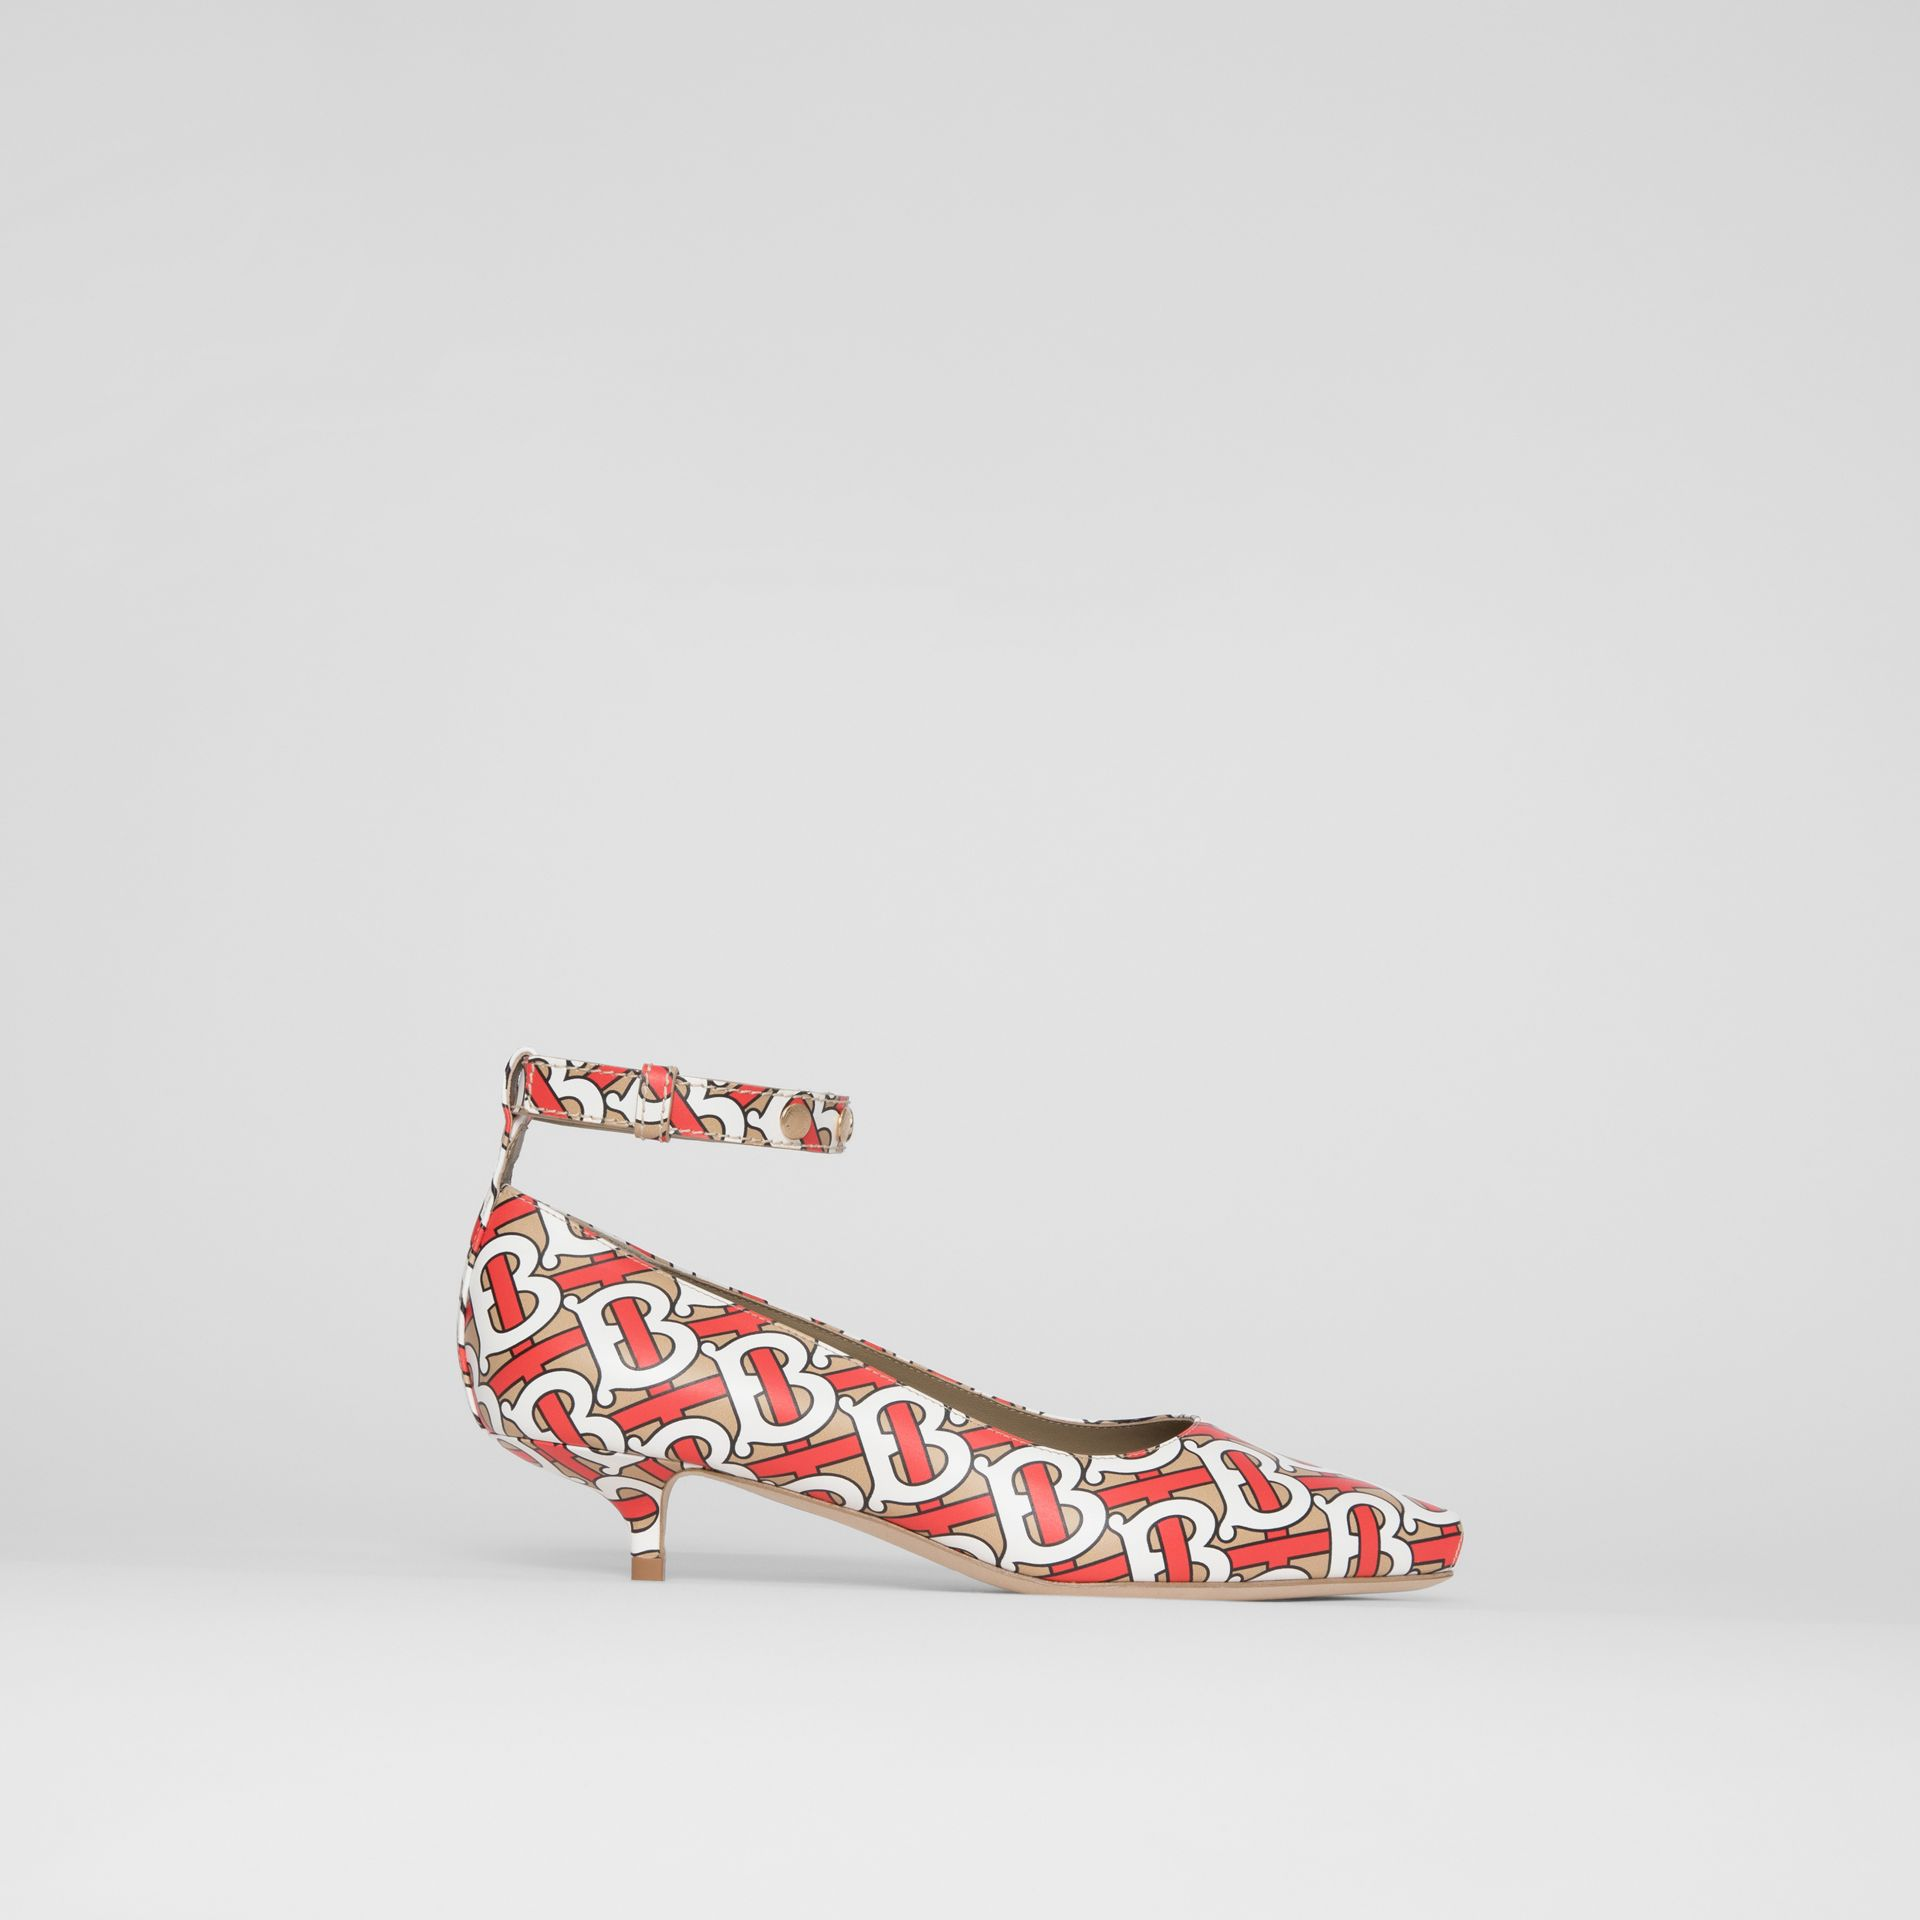 Monogram Print Leather Peep-toe Kitten-heel Pumps in Tawny - Women | Burberry Australia - gallery image 5